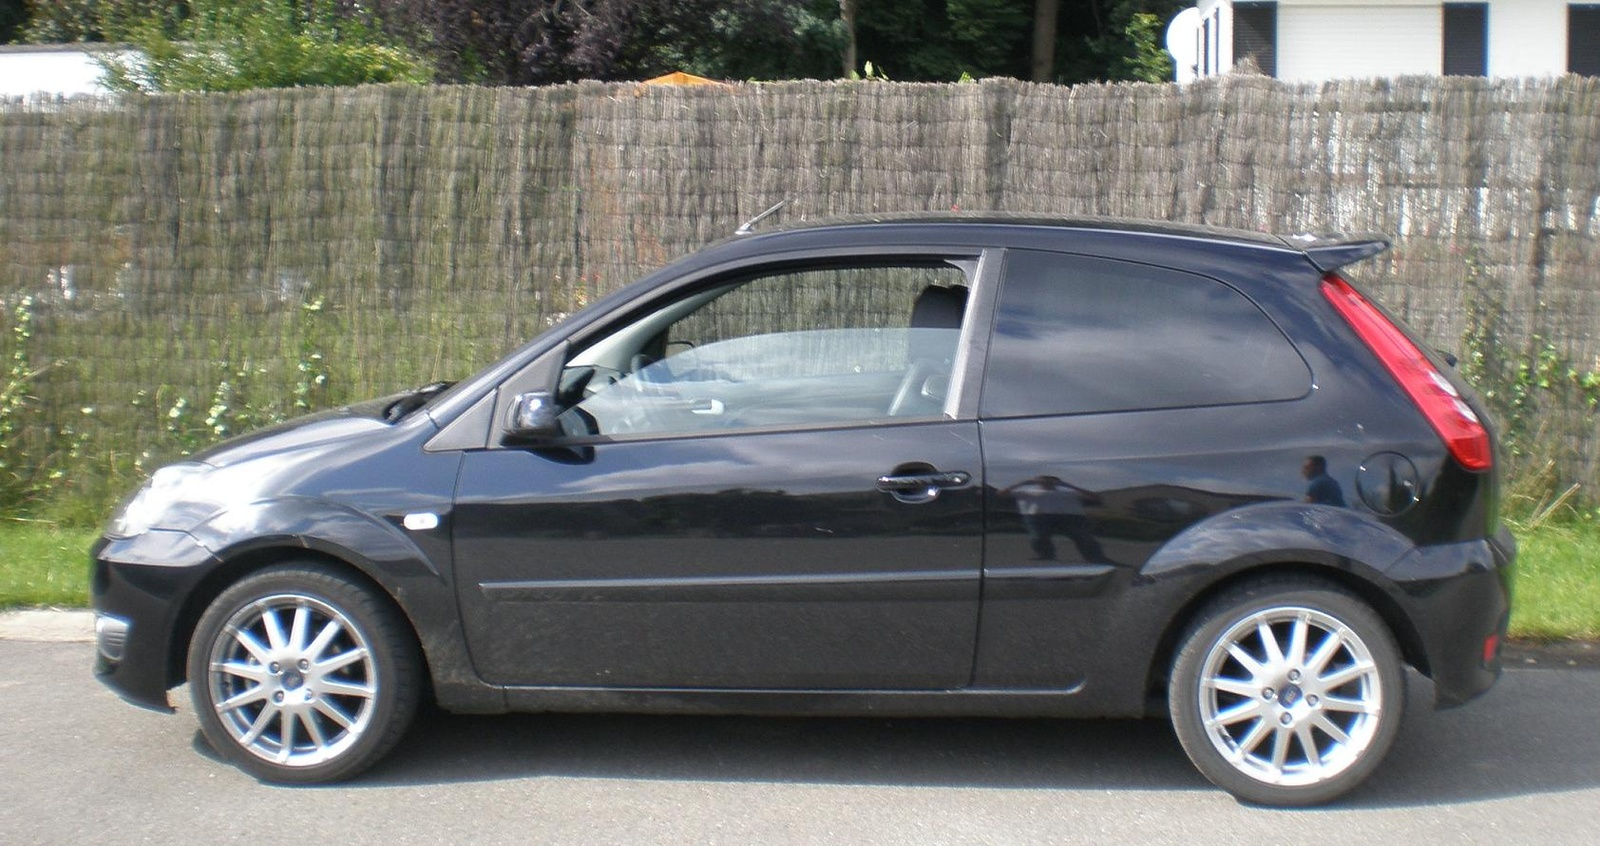 2007 ford fiesta pictures cargurus